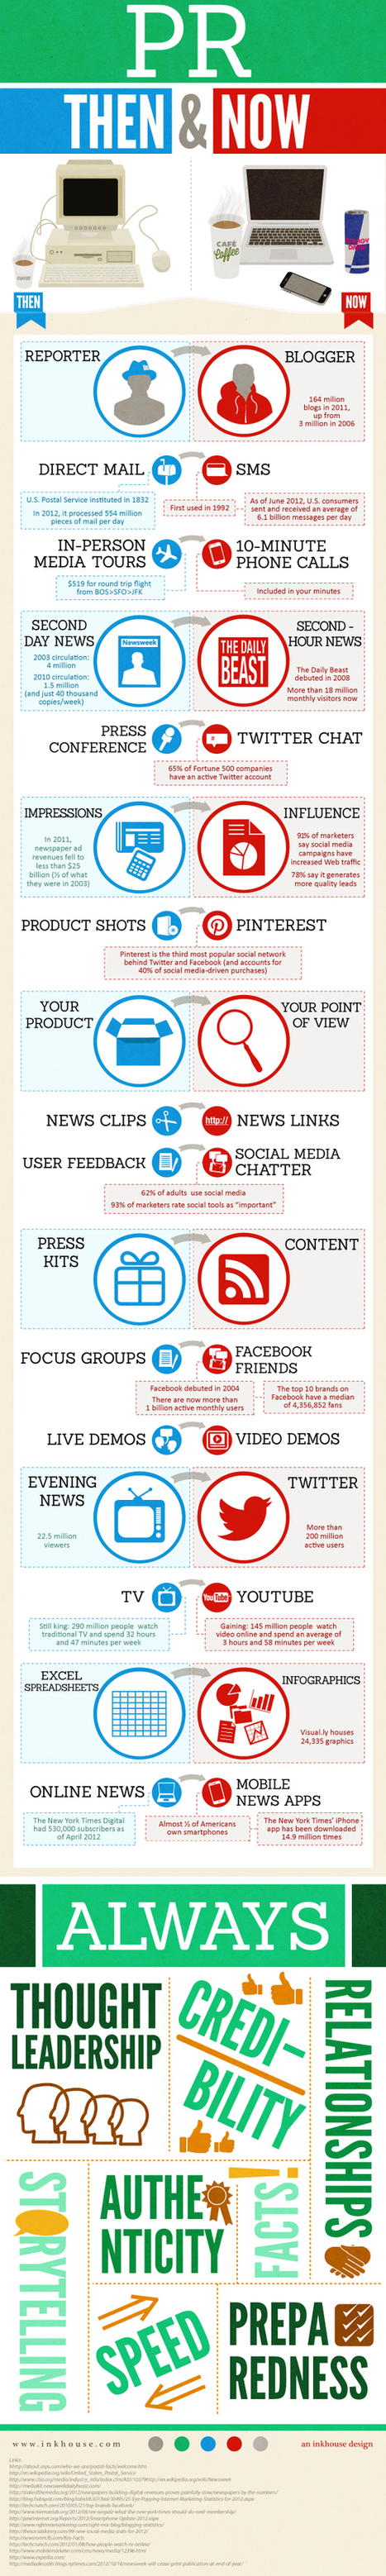 Good infographic. Social Media Releases & The Art of Conversation - The Re-imagining of PR | Pervasive Entertainment Times | Scoop.it